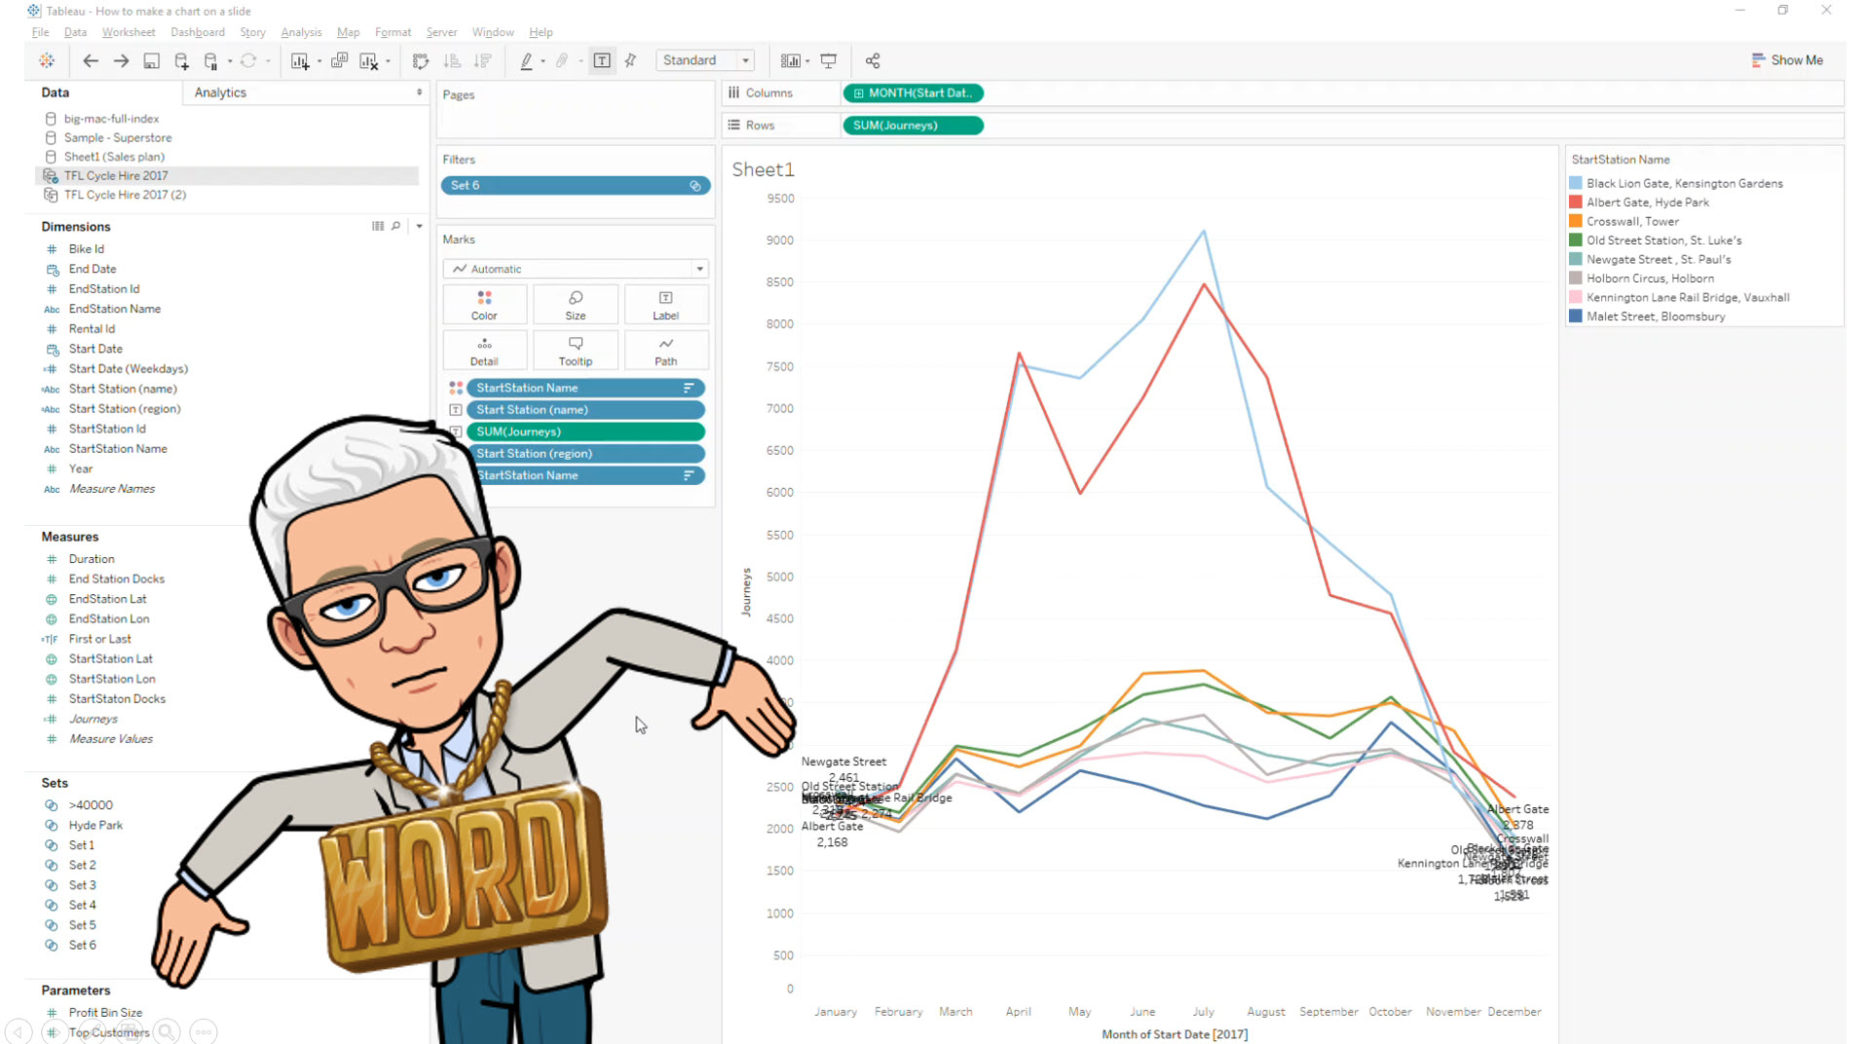 How to use Tableau in a presentation - GravyAnecdote